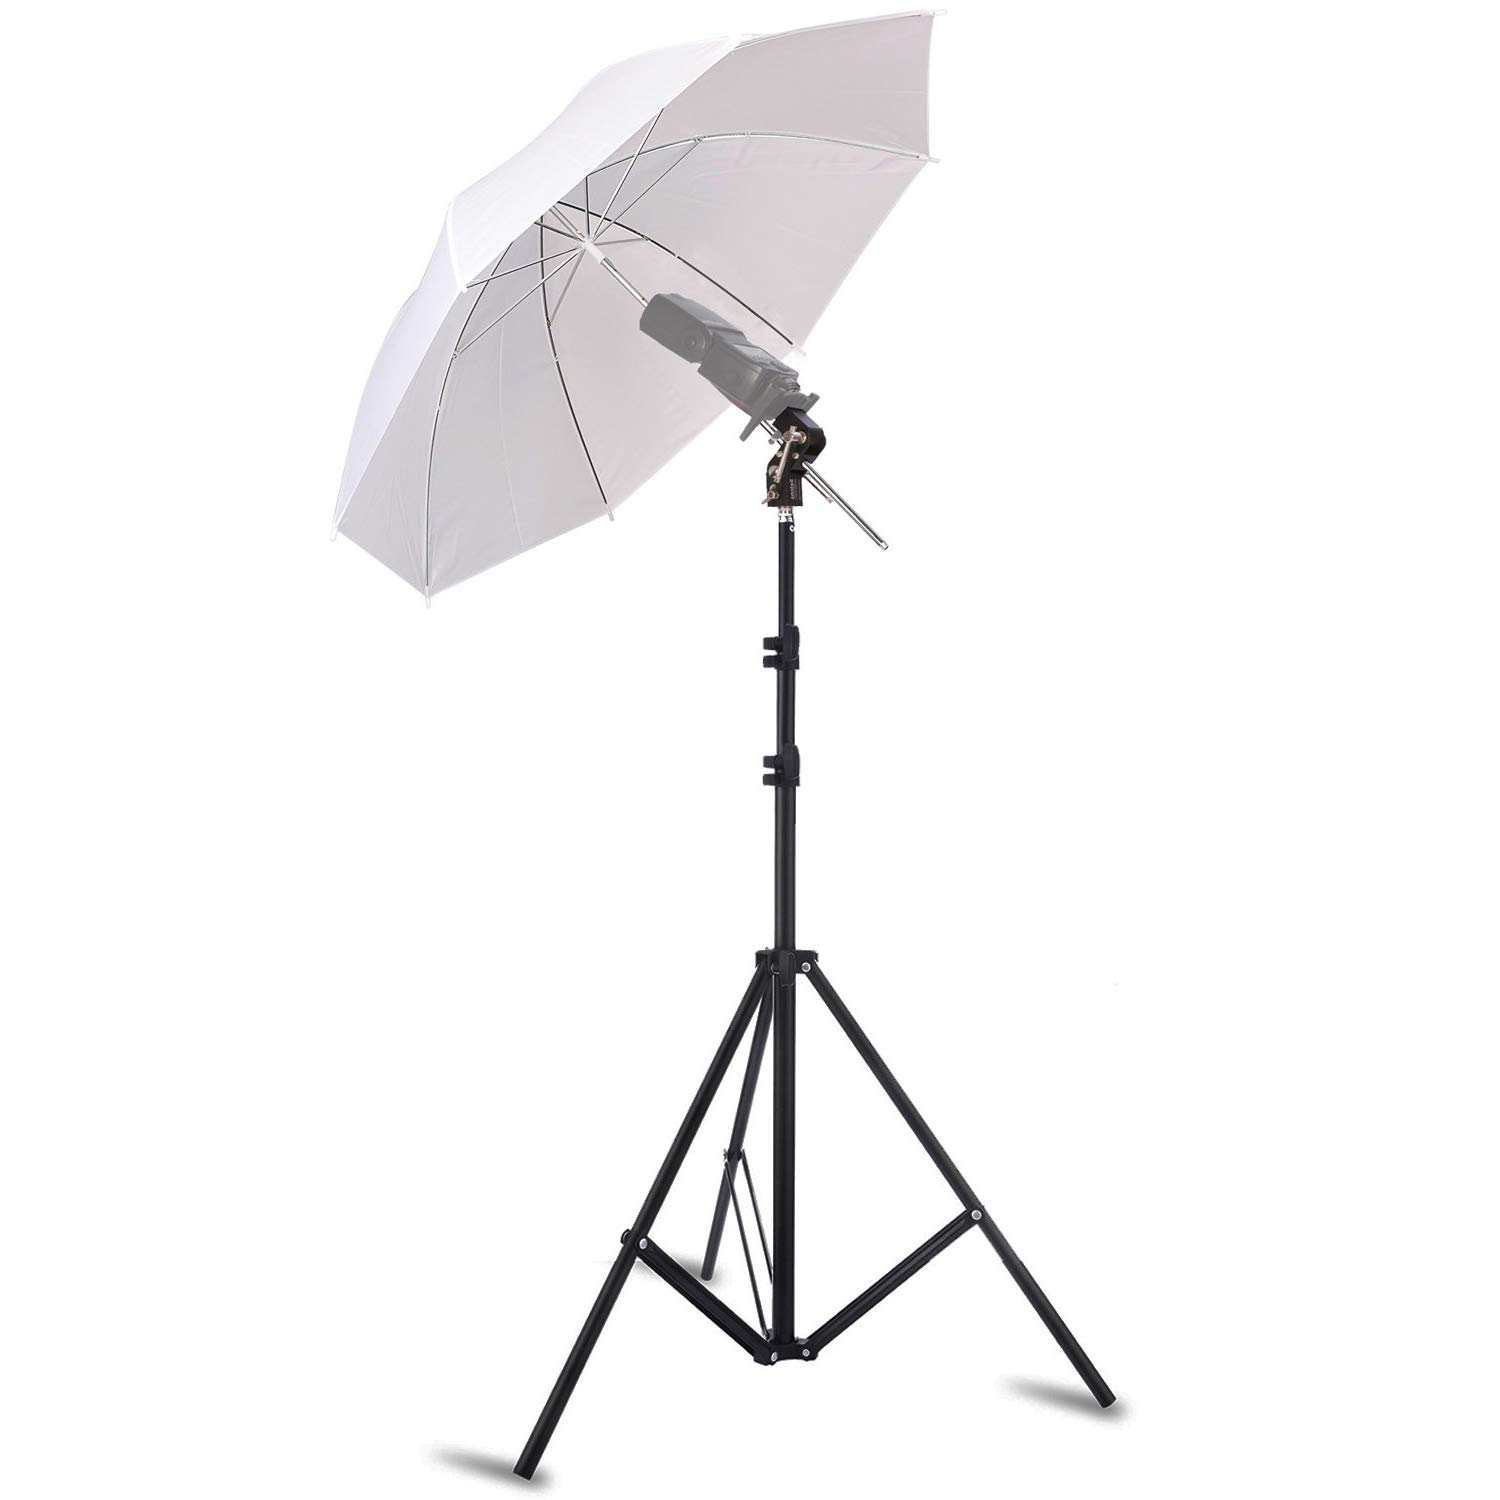 Selens Photo Umbrella Kit 33''/84cm White Soft Umbrella with Light Stand and Metal Flash Bracket Mount for Portrait Photography, Studio and Video Lighting